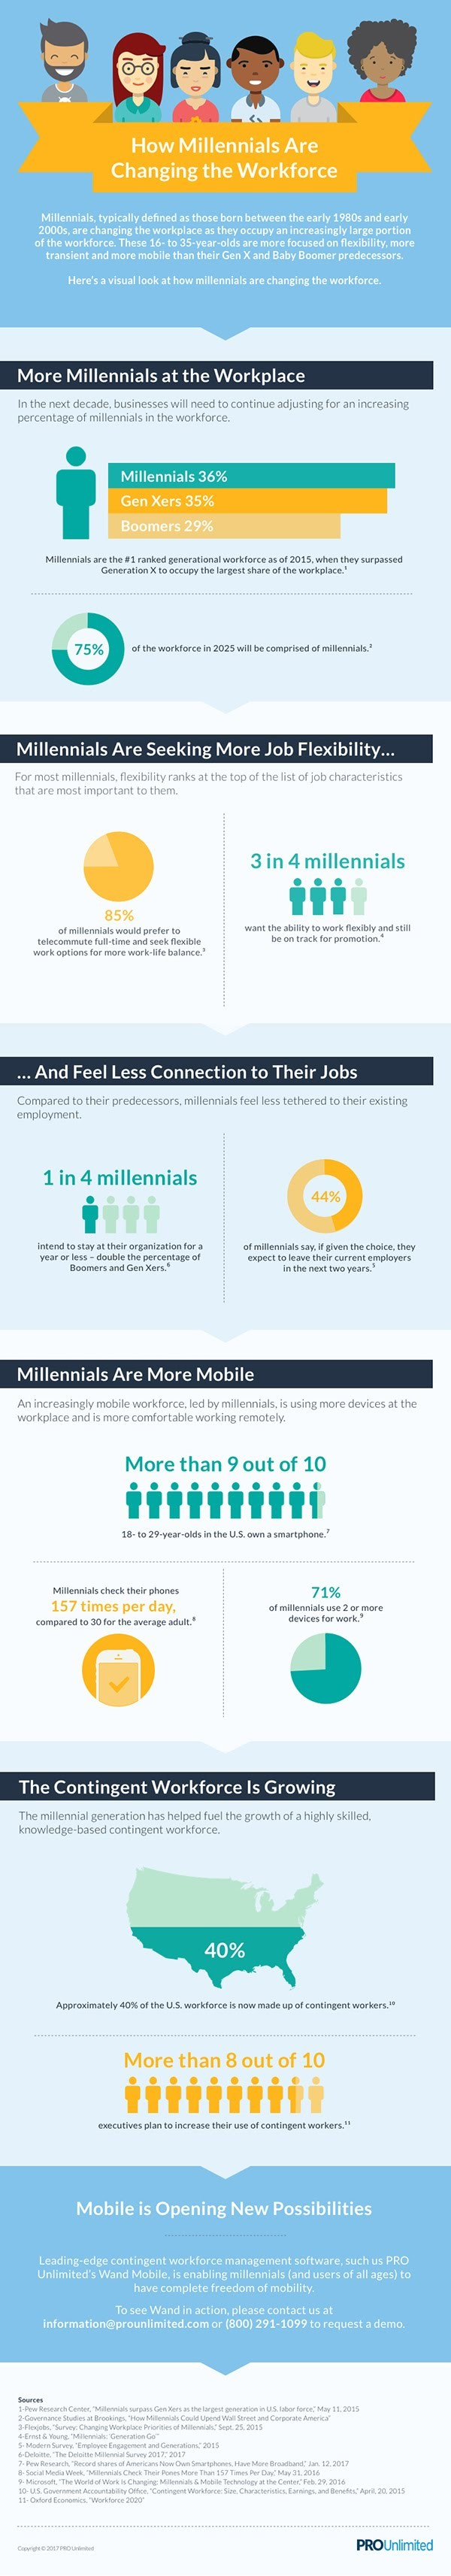 How Millennials are Changing the Workforce